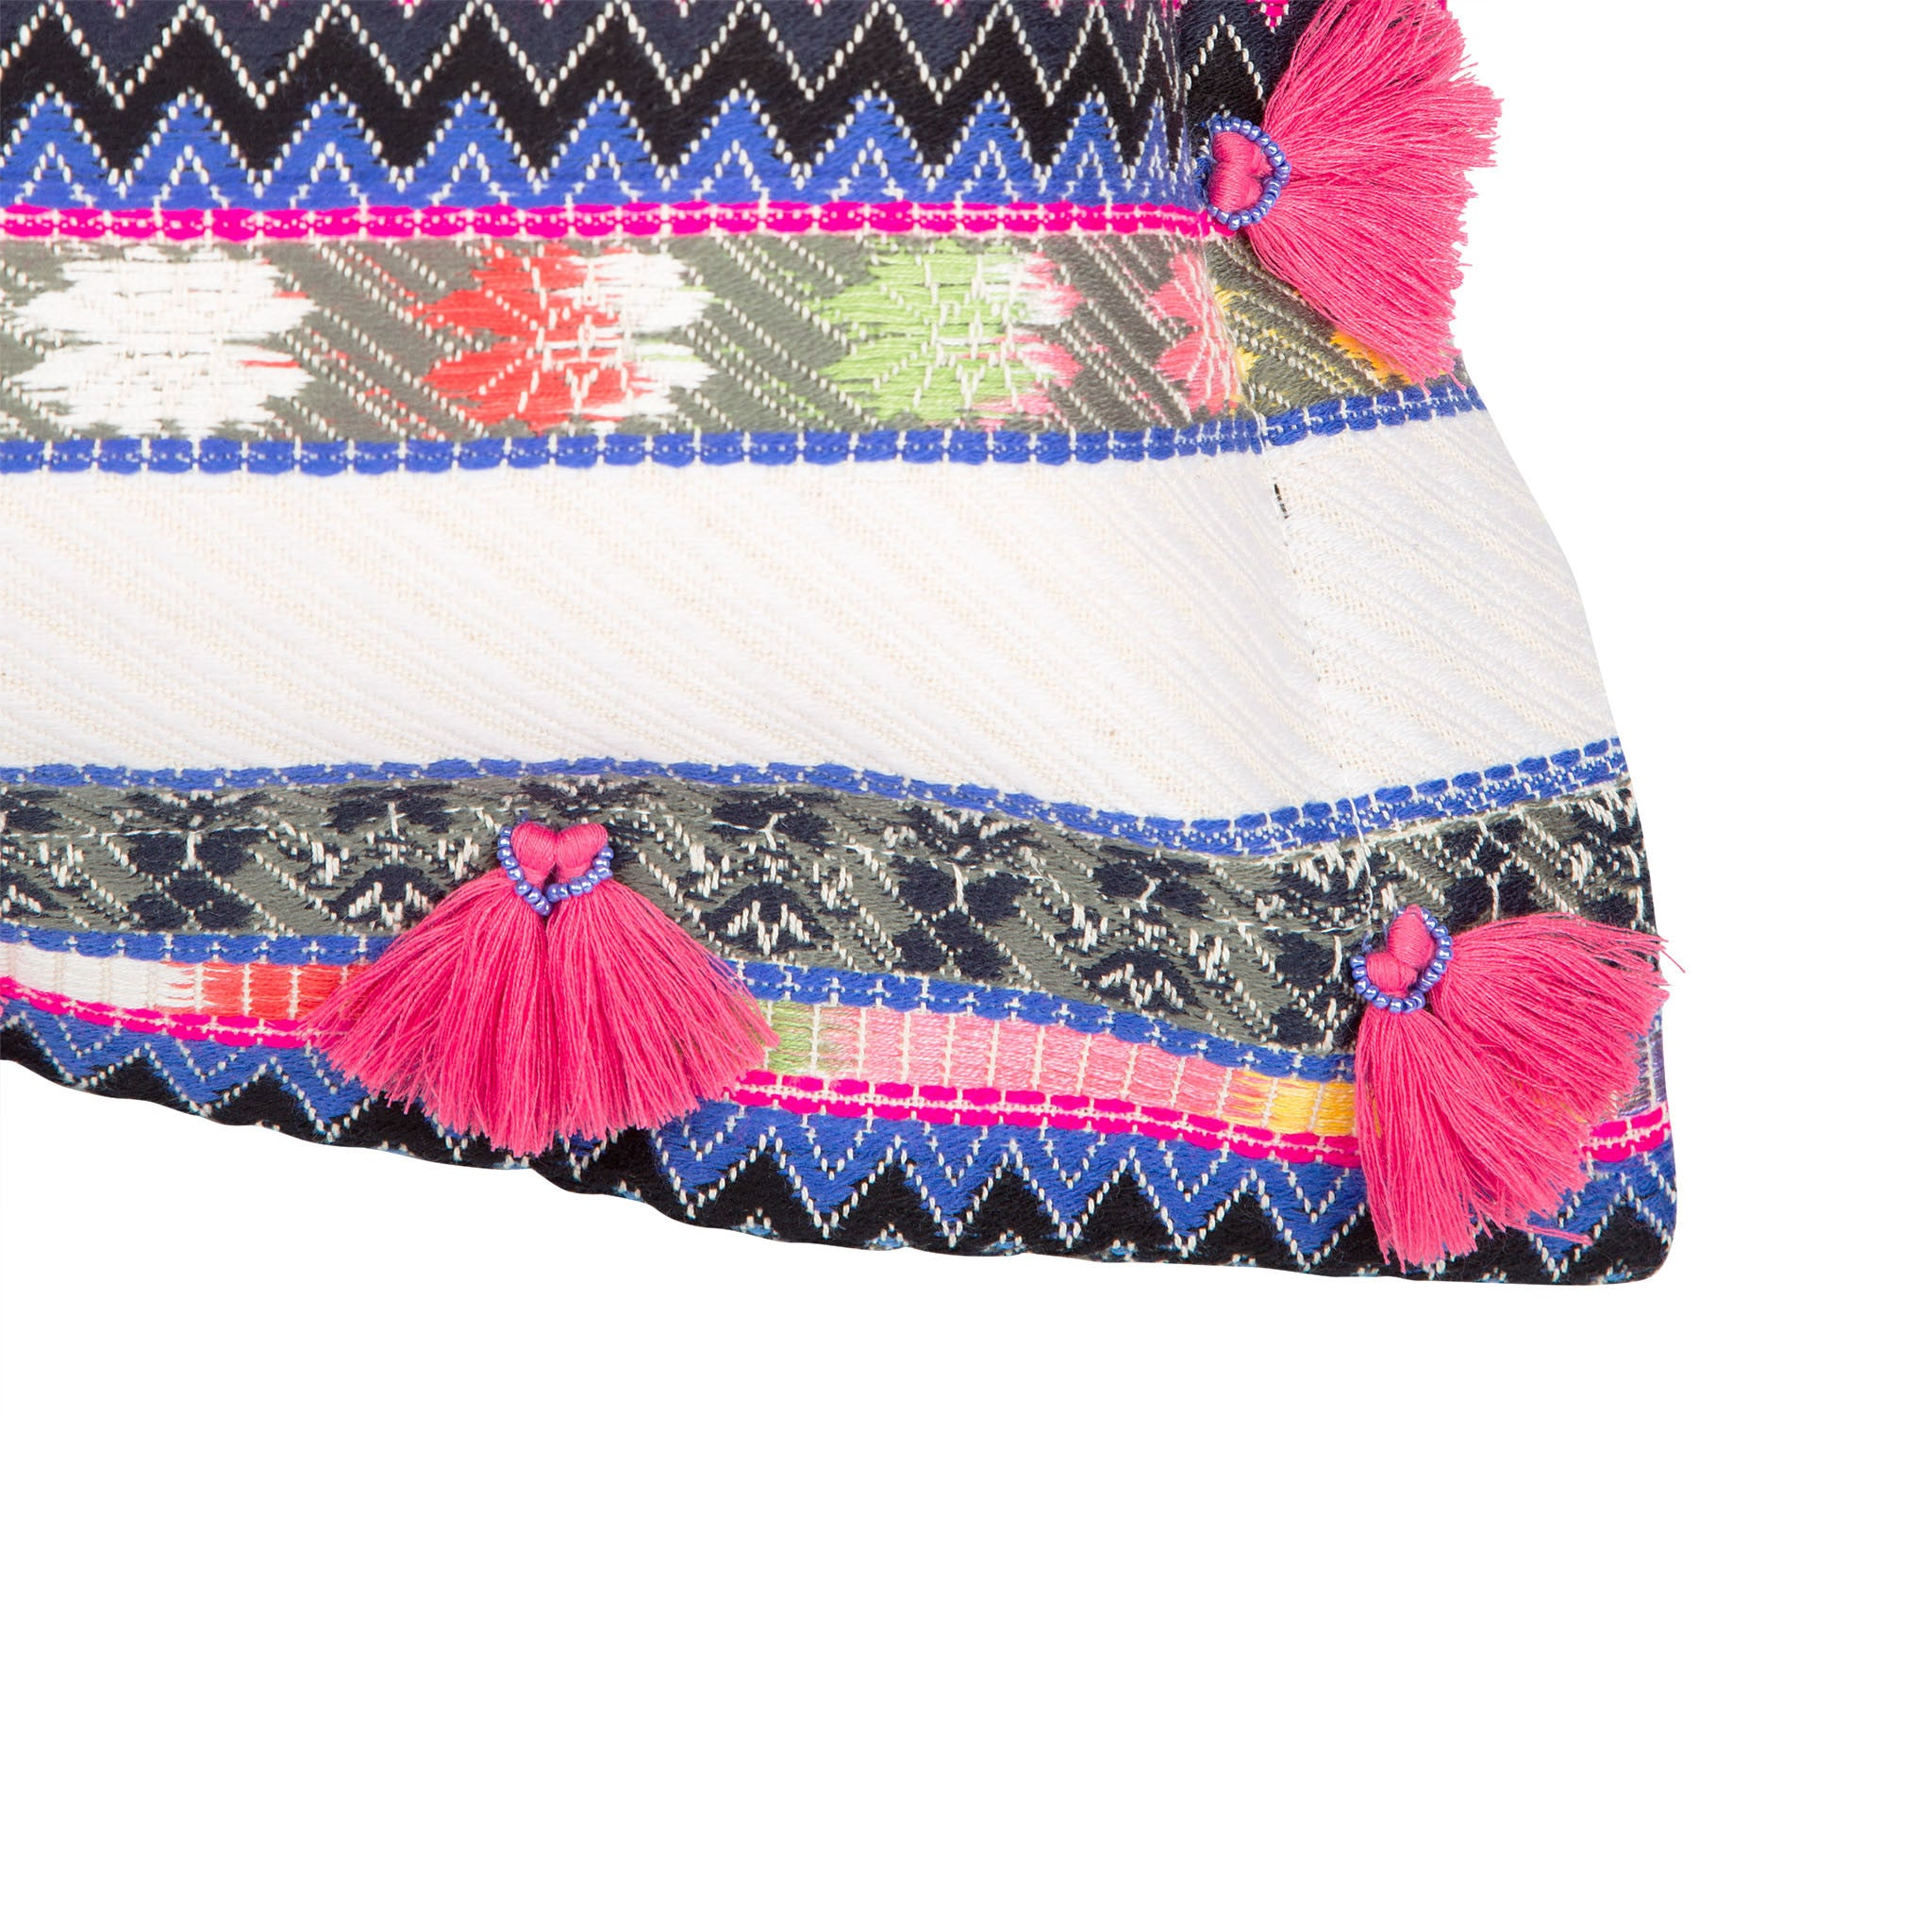 Bedouin-style cotton cushion with pink tassels - Bivain - 4